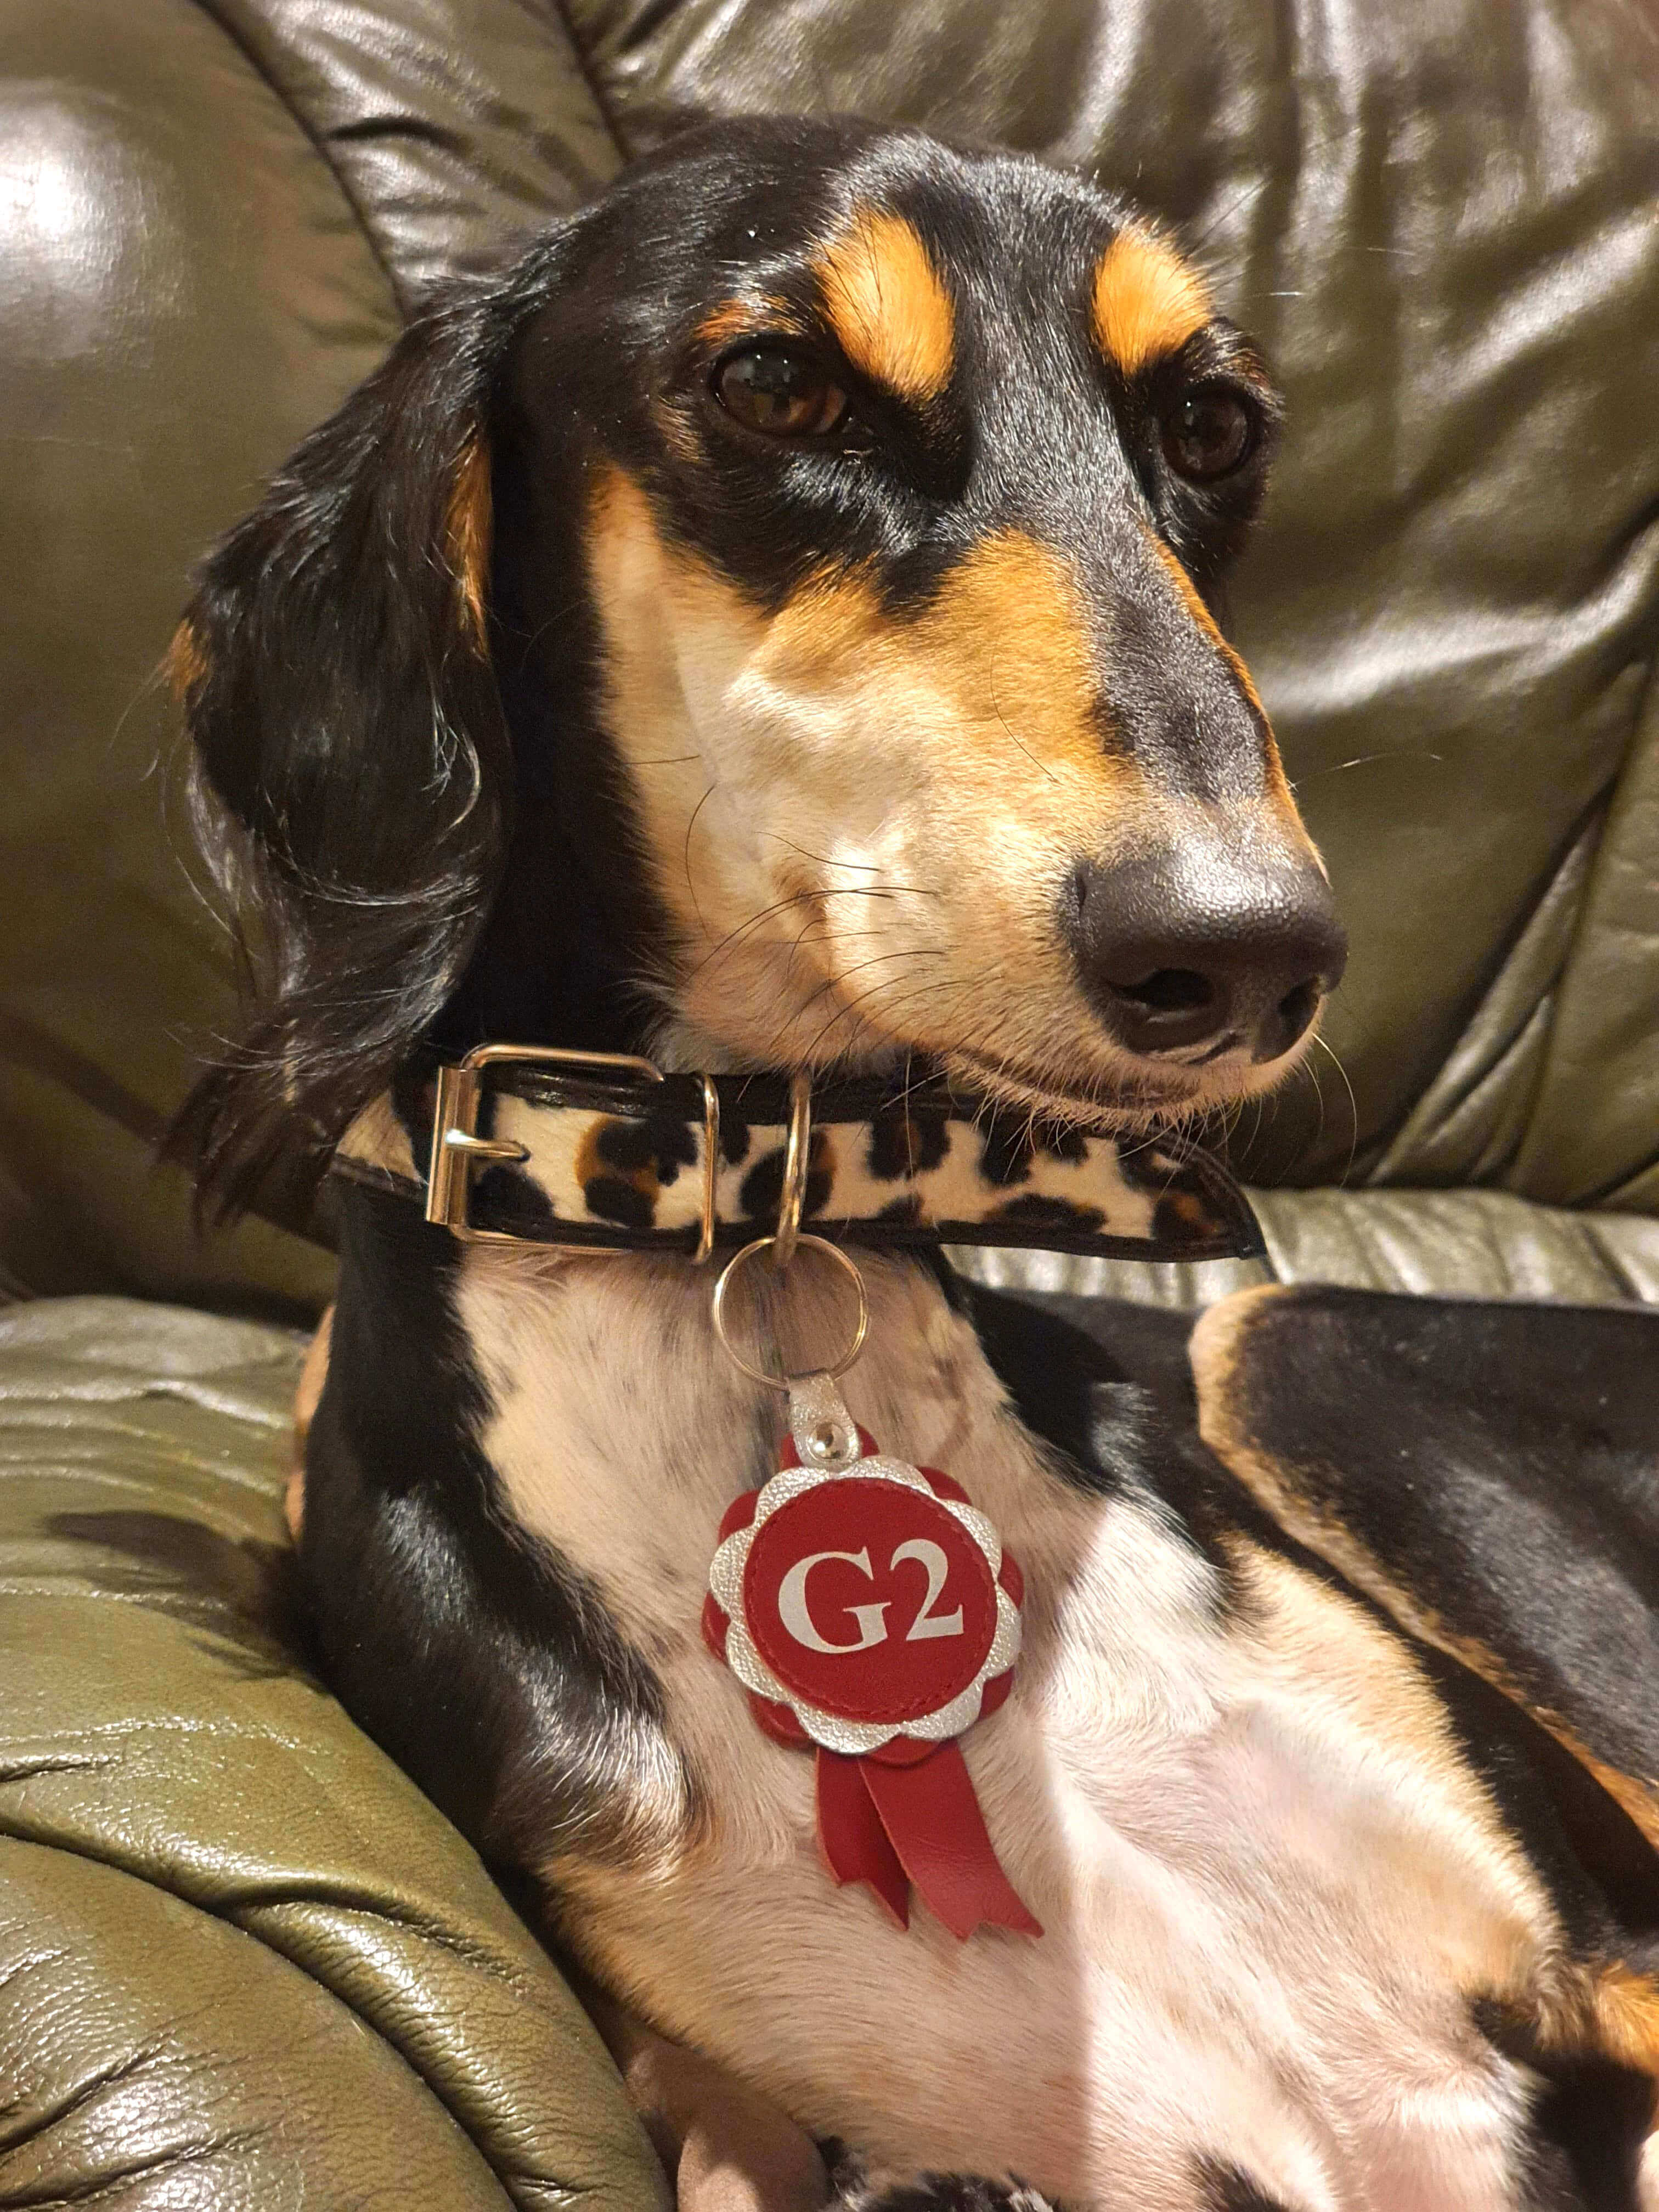 Dog Moda's very own Agiluki is very proud to have won into Grade 2 and wears his Agility Grade rosette with pride as a collar charm (although not when training or competing of course!)